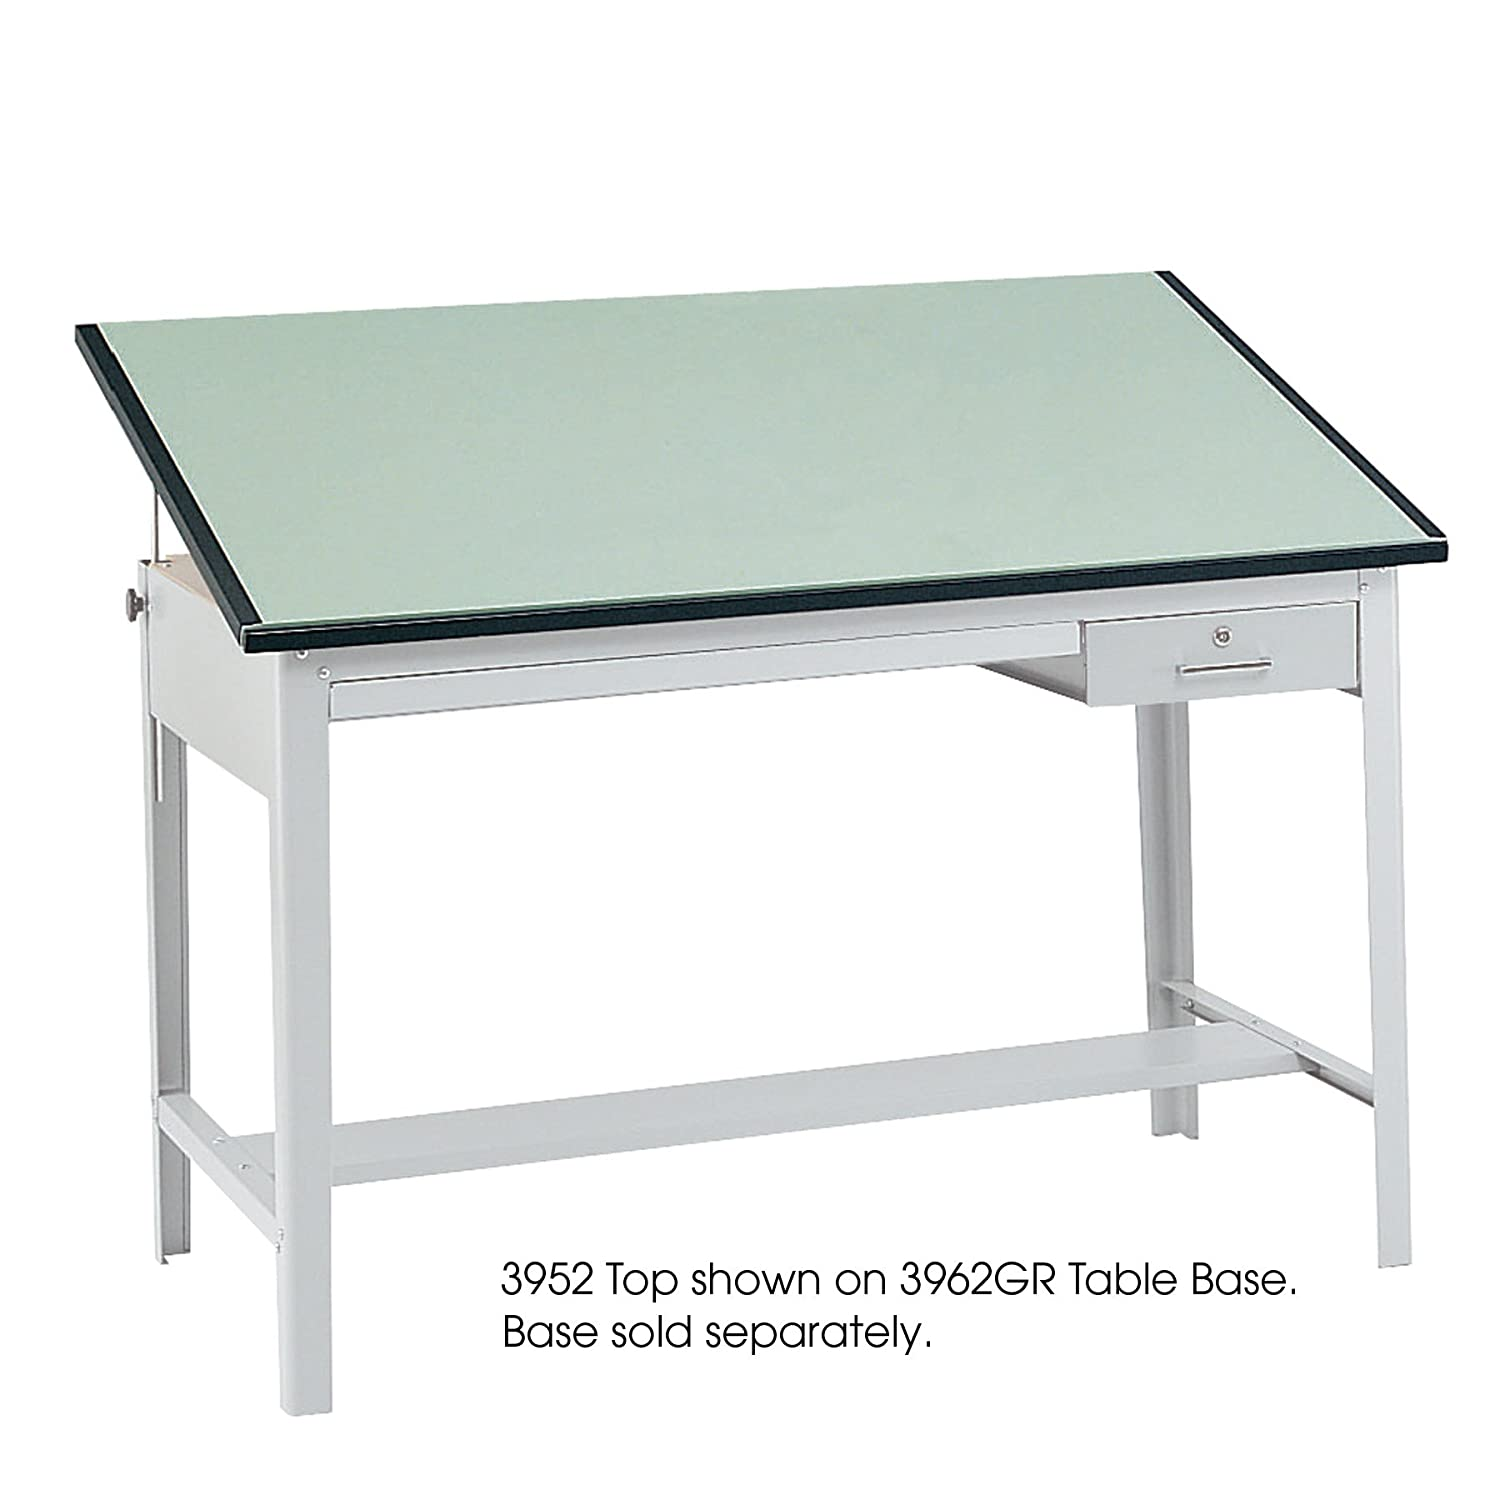 Drafting table dimensions - Amazon Com Safco Products 3953 Precision Table Top 72 W X 37 1 2 D For Use With 3962gr Table Base Sold Separately Green Kitchen Dining